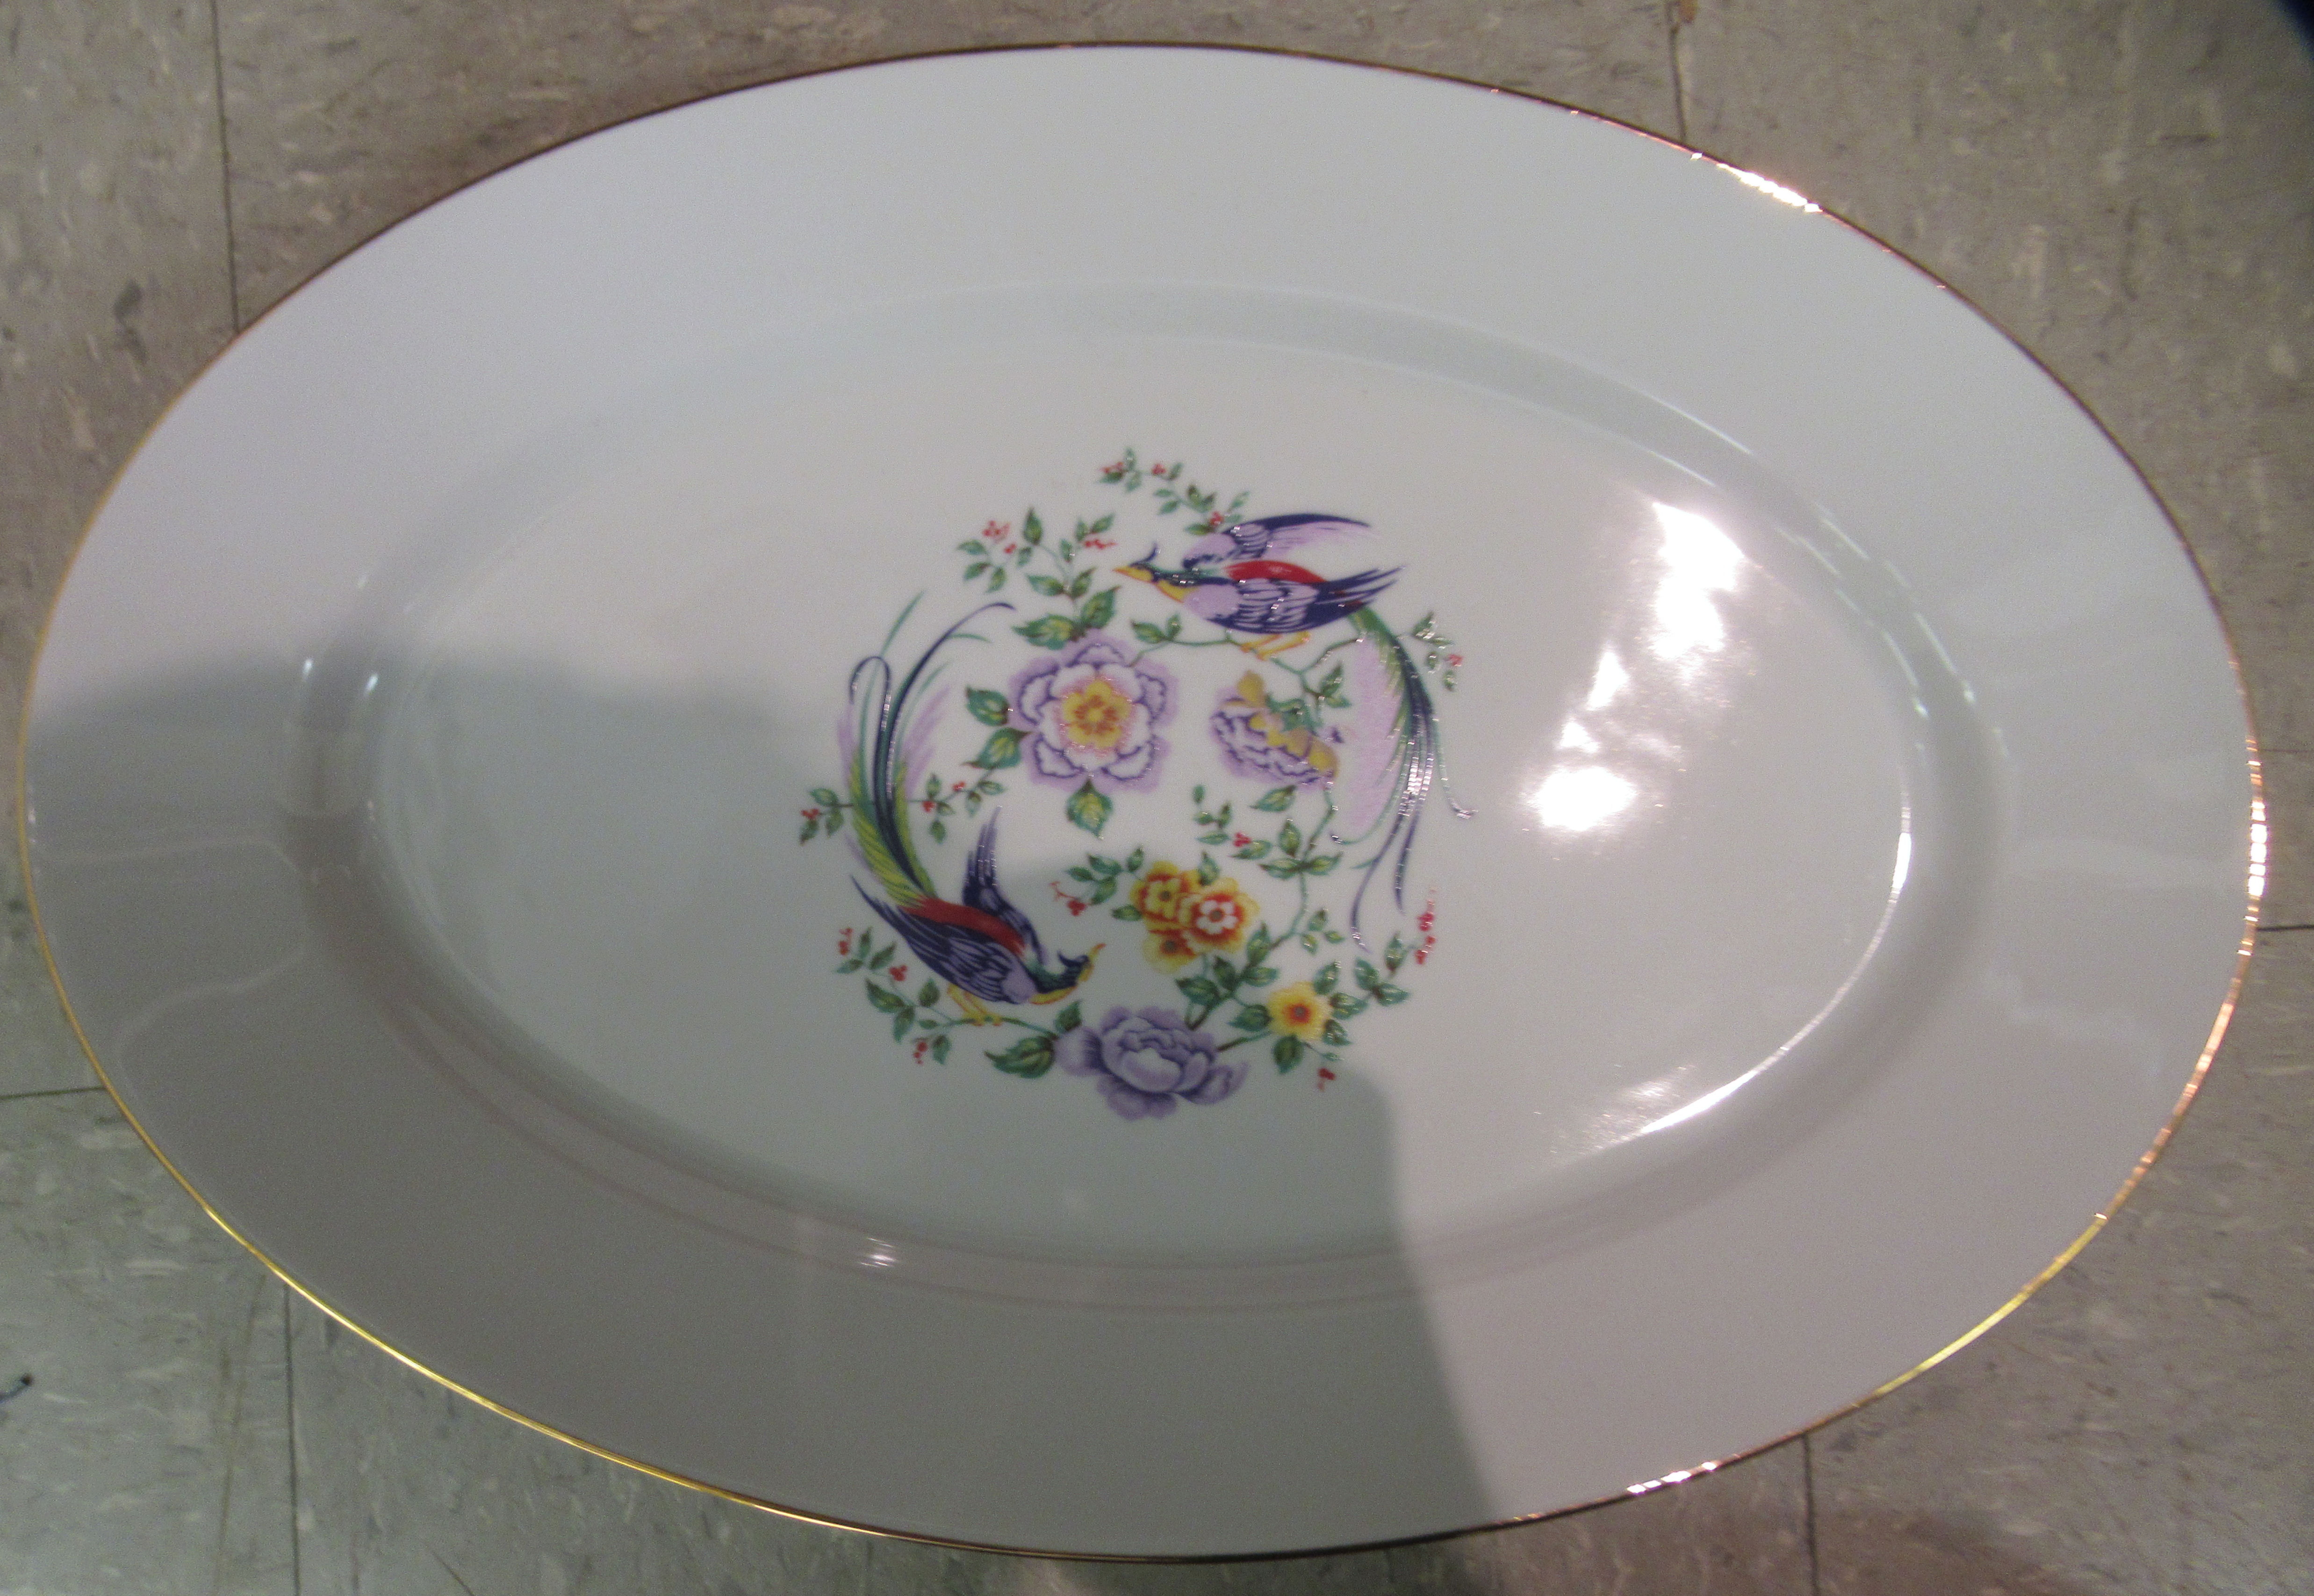 A Limoges porcelain dinner service, decorated with birds of paradise and flora - Image 6 of 7